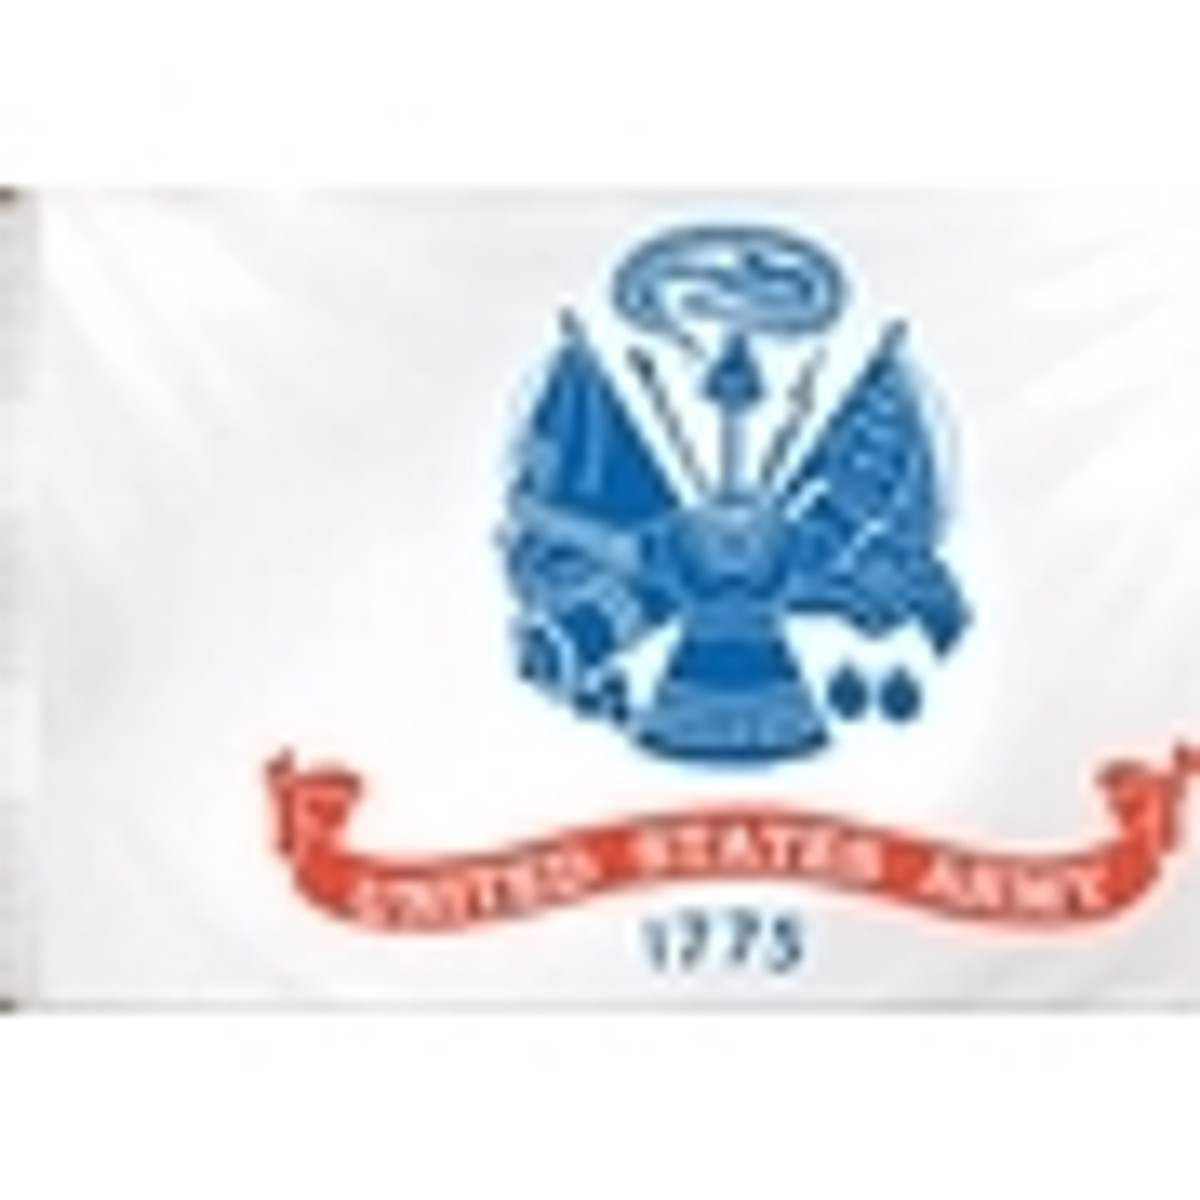 Military Superknit Polyester Flags 4ftx6ft